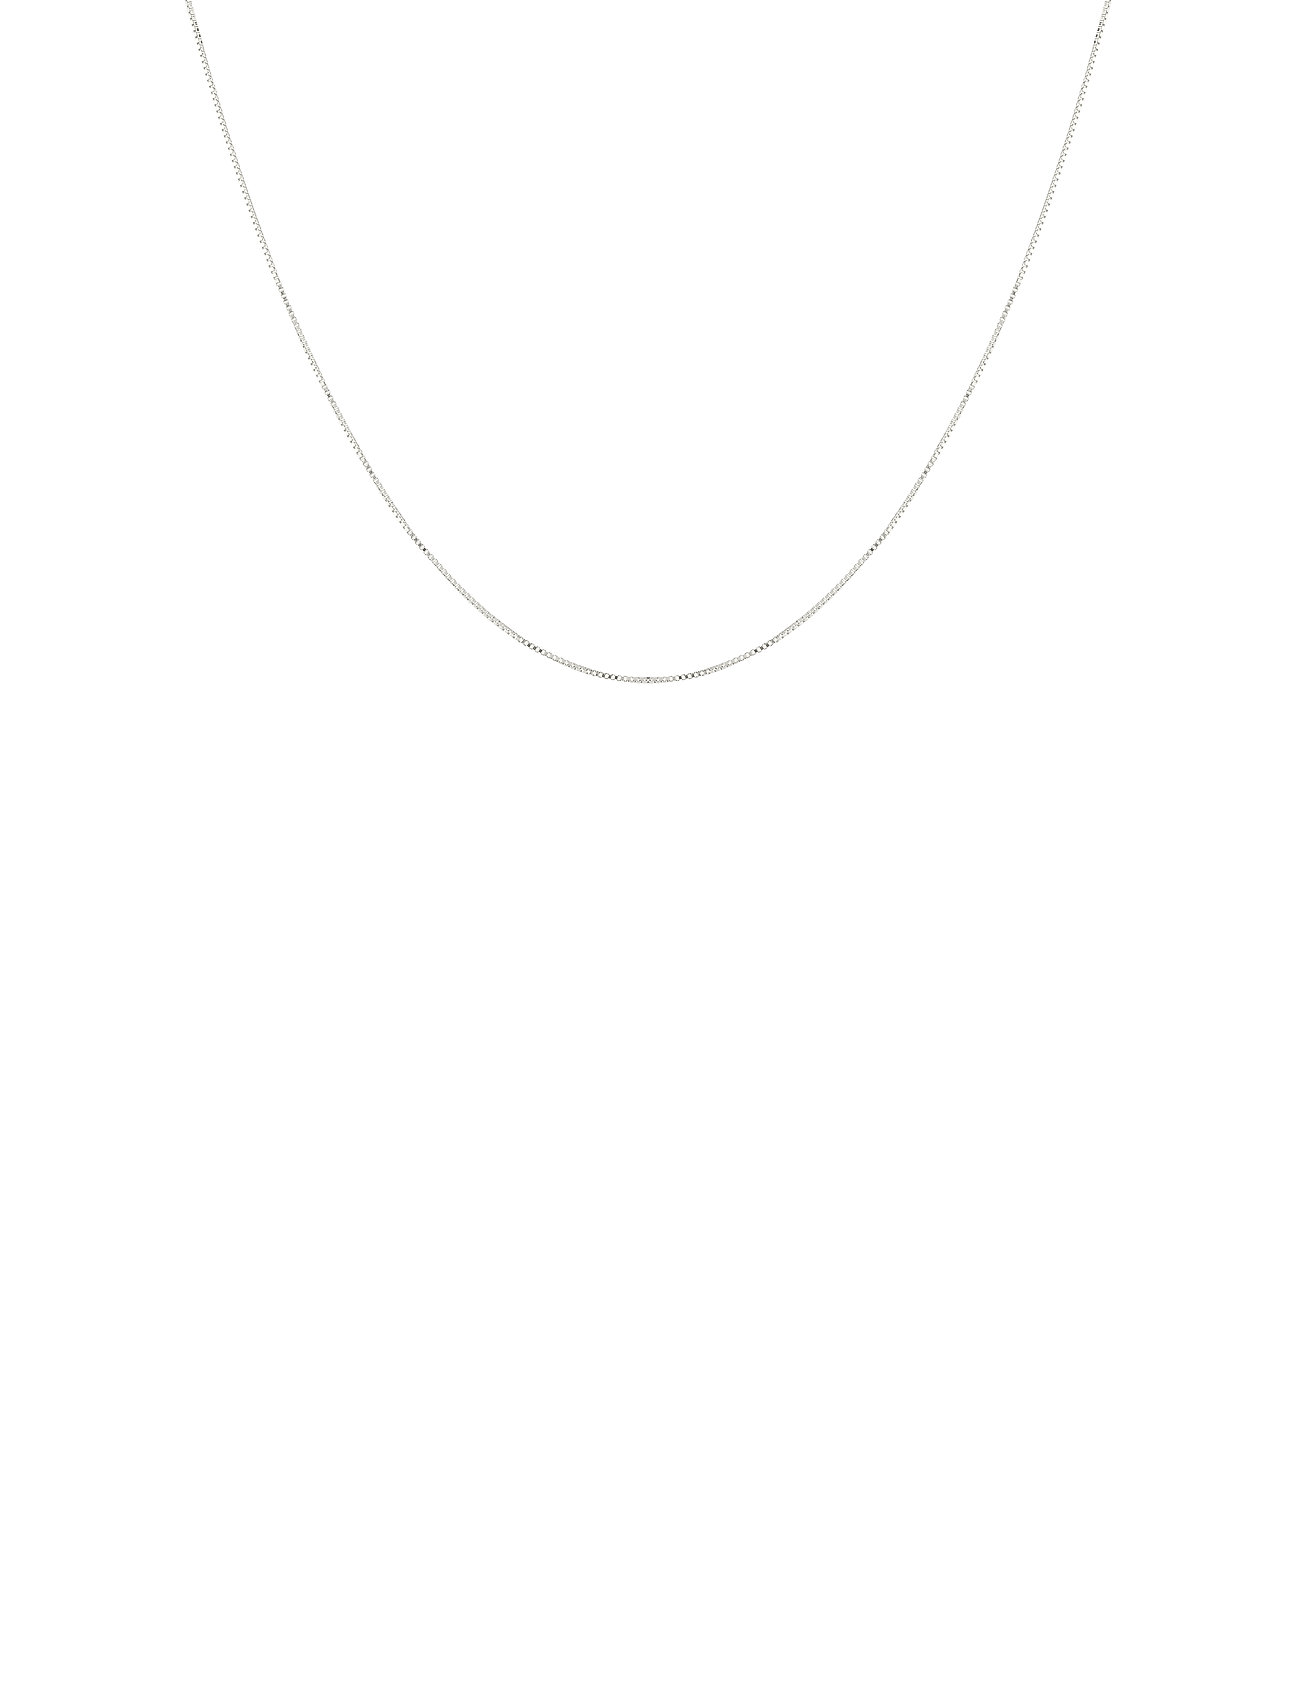 Beloved Medium Box Chain Silver Accessories Jewellery Necklaces Dainty Necklaces Sølv Syster P